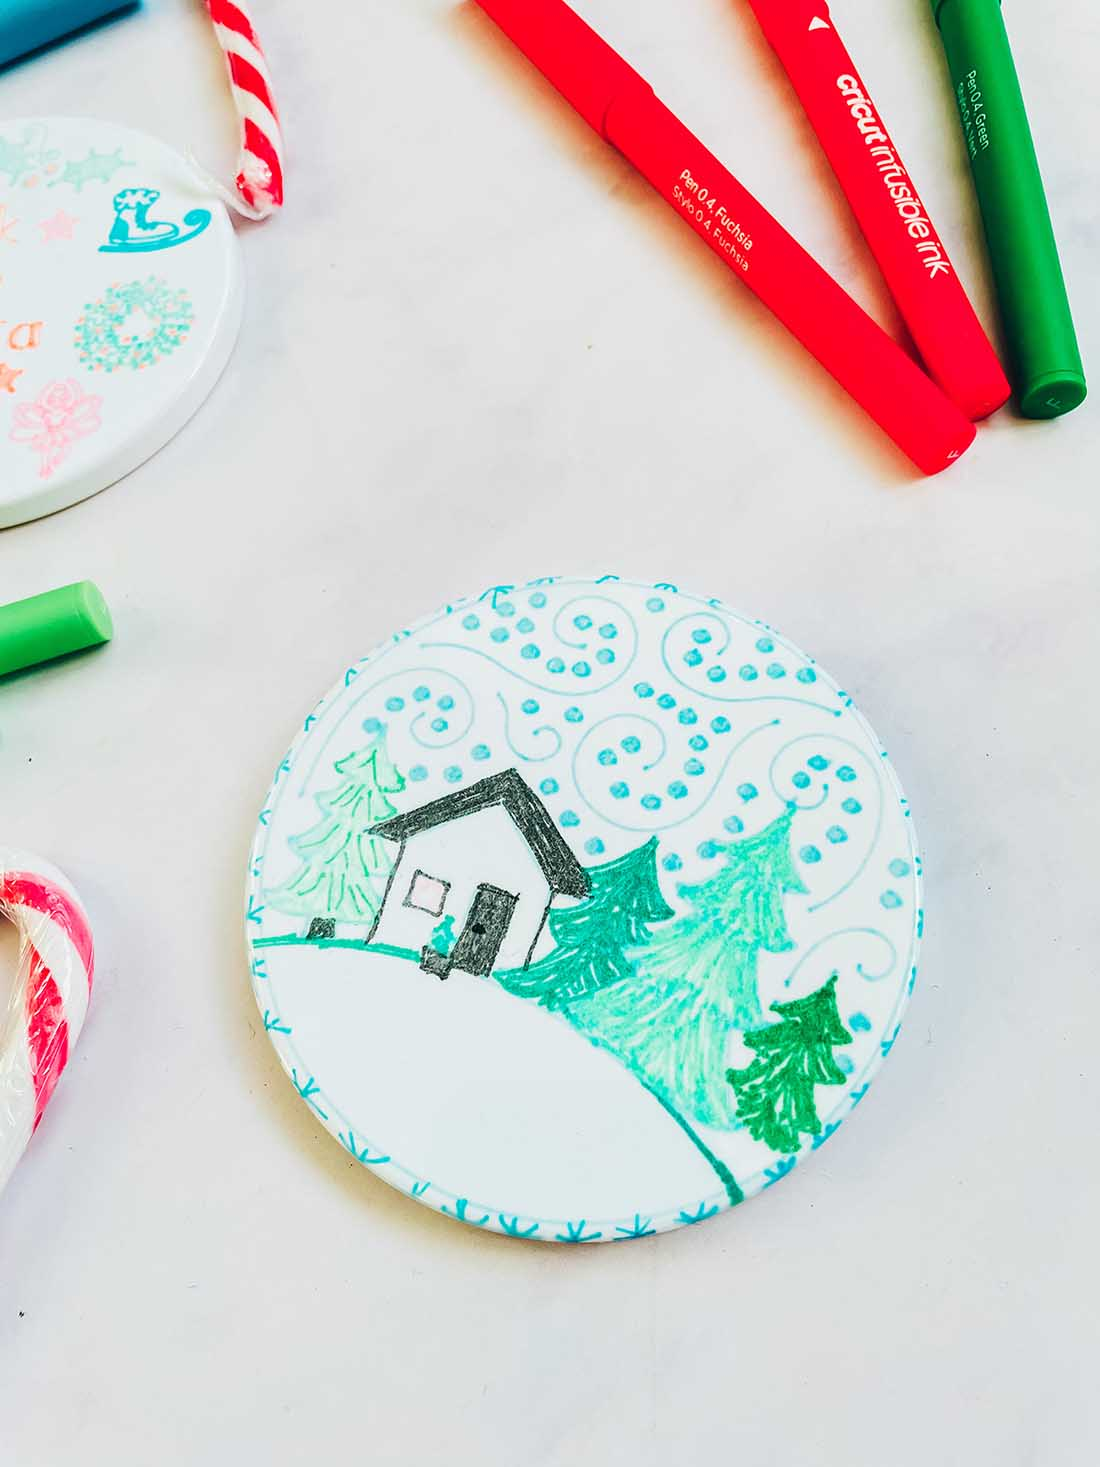 How to create coasters with Infusible ink pens